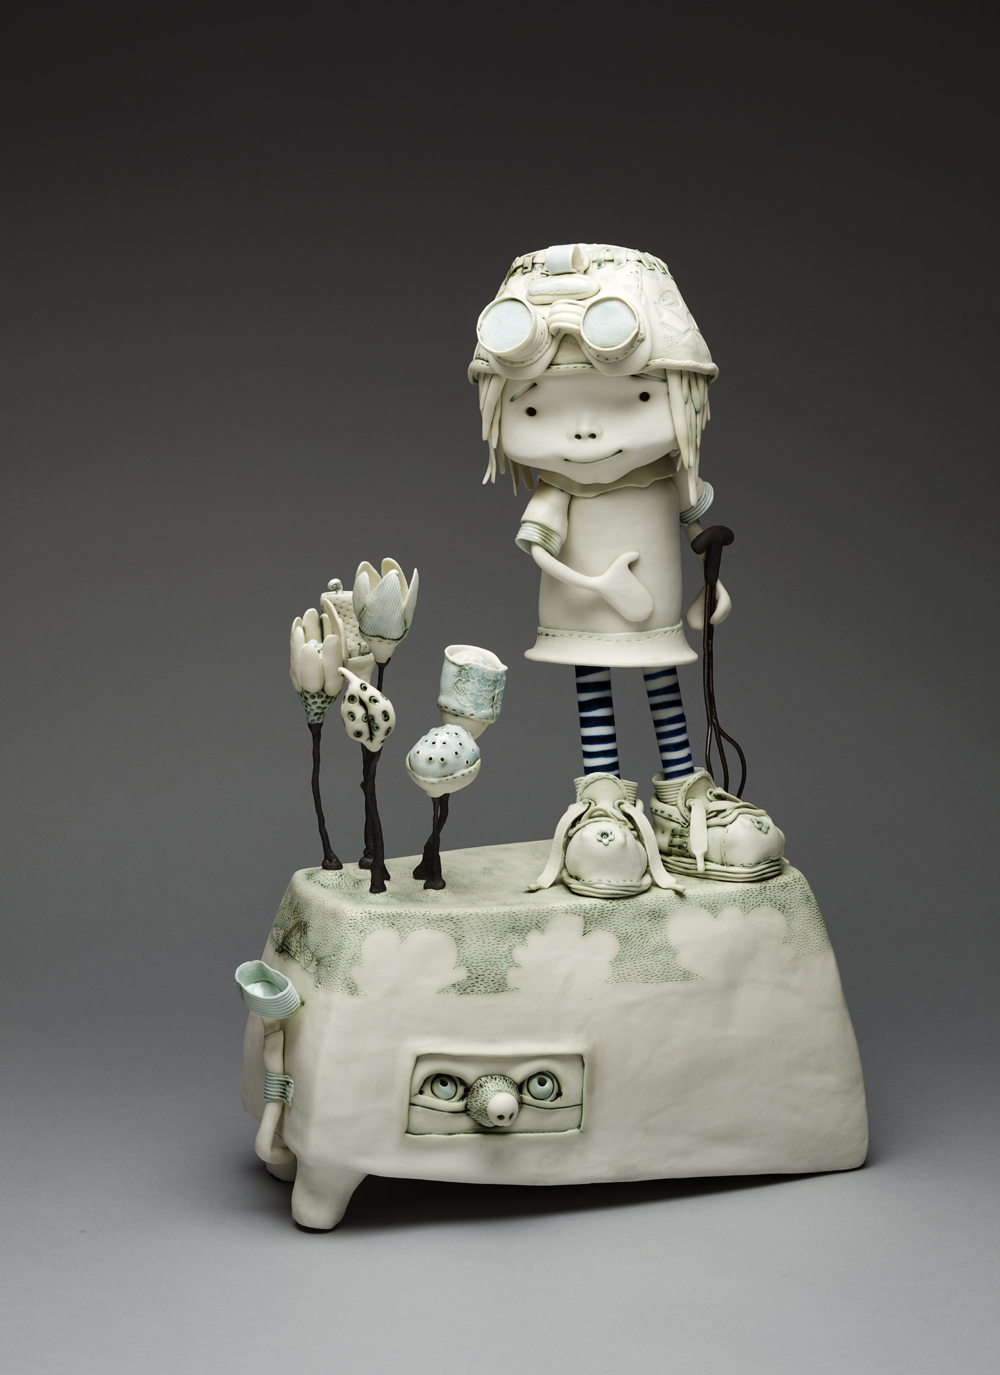 'The secret under my garden' Width 19cm x Height 63cm x Depth 19cm Porcelain and mixed media